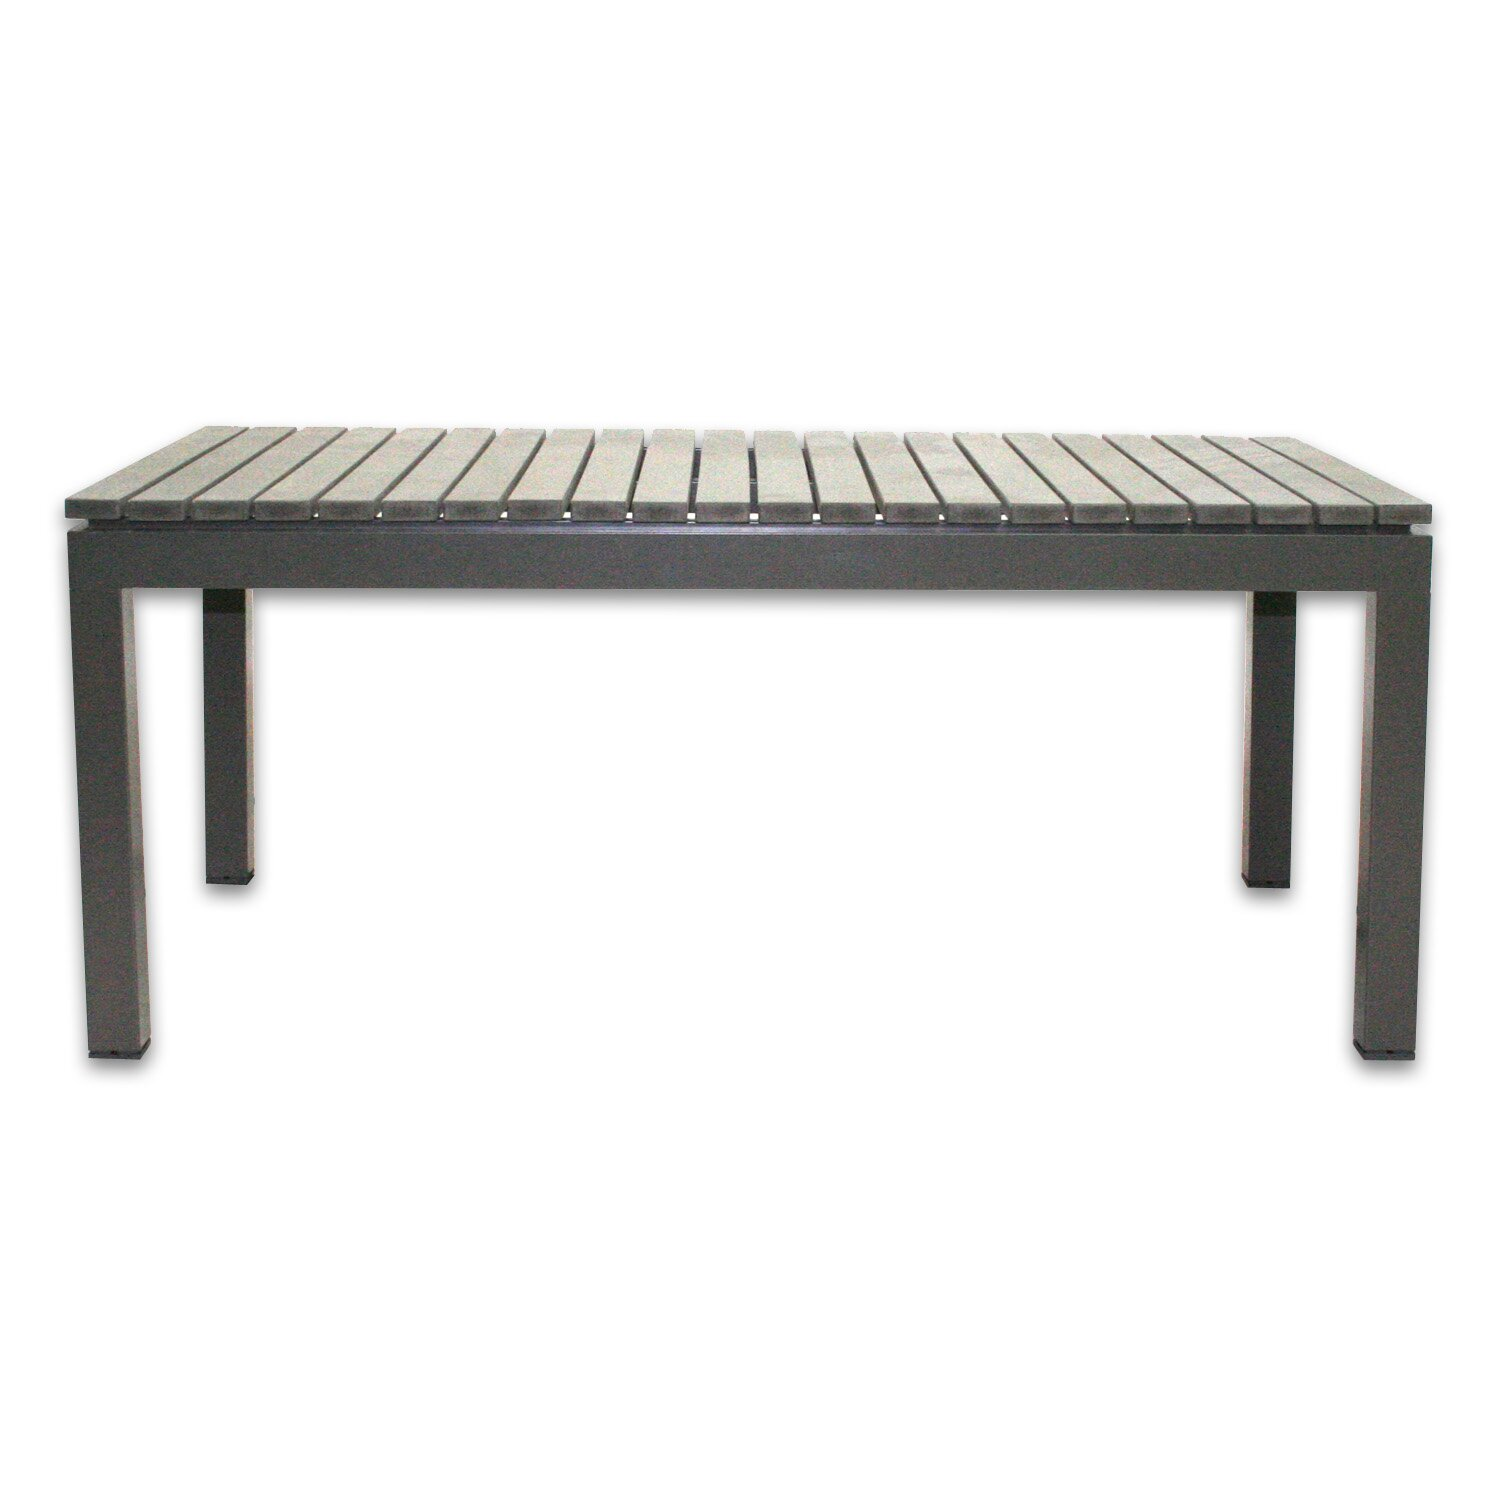 Patio heaven riviera coffee table reviews wayfair Patio coffee tables